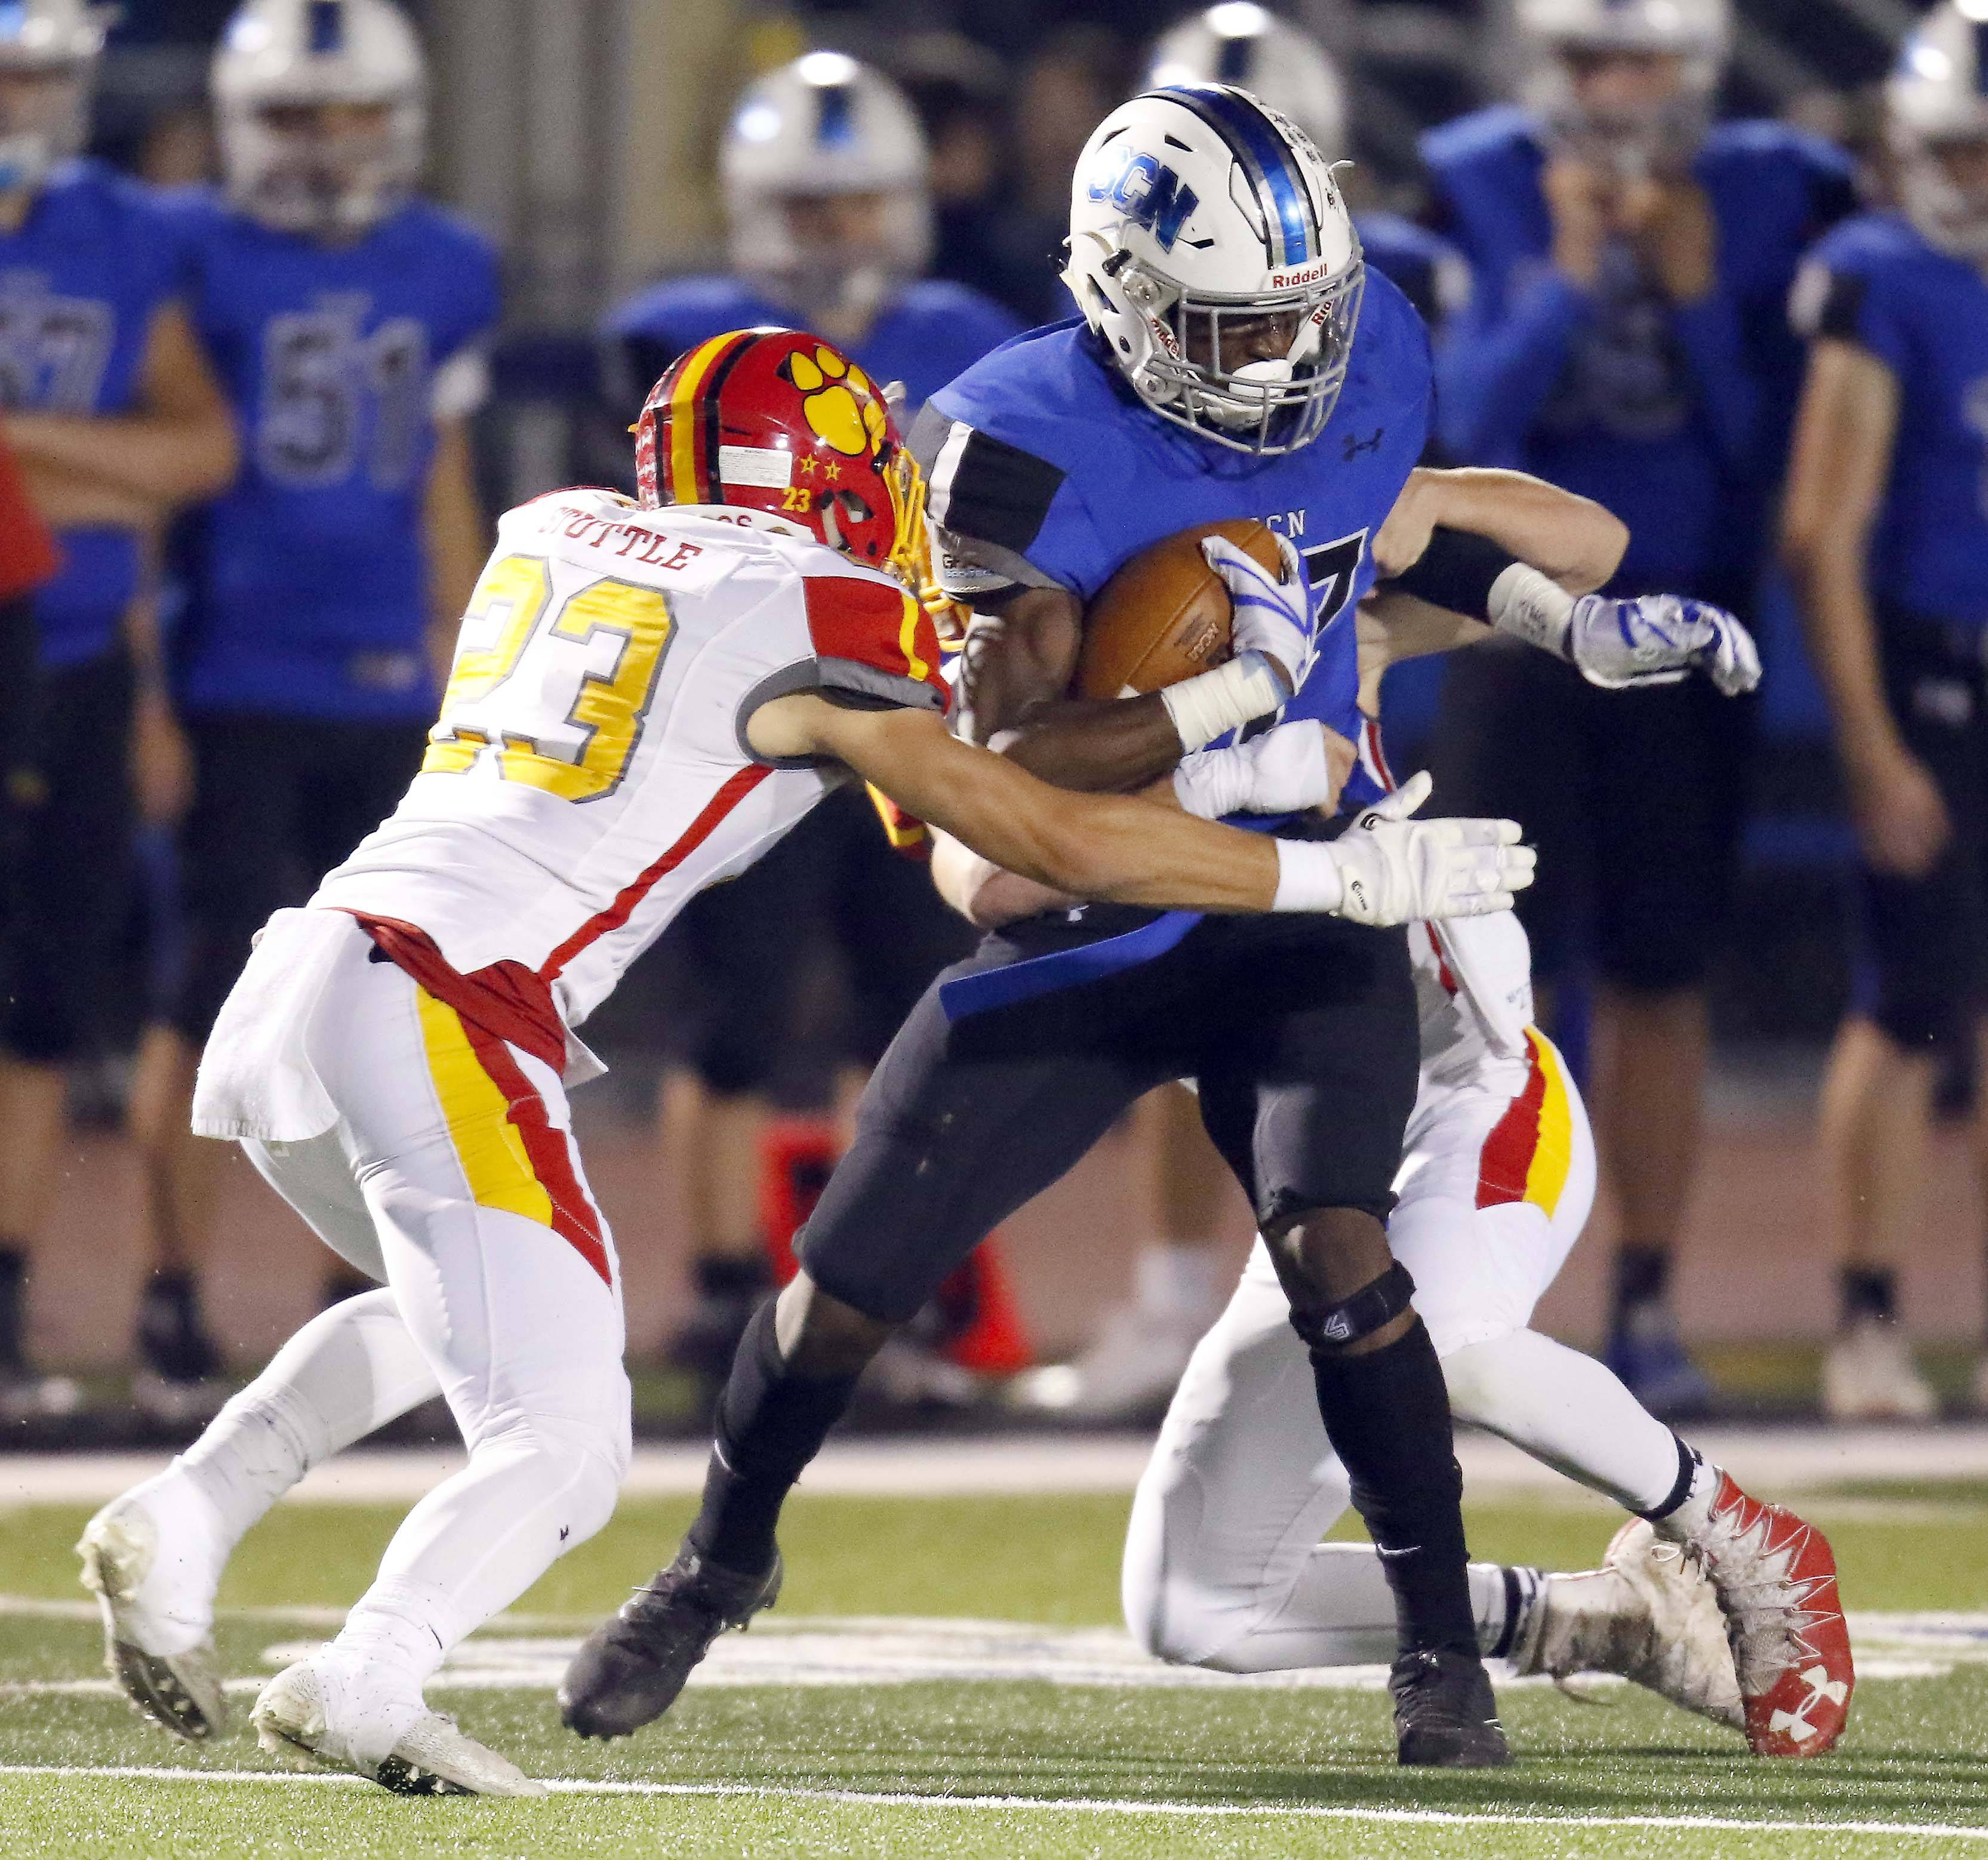 St. Charles North's Tyler Nubin (27) is wrapped up by Batavia's Tom Stuttle (23) during Batavia at St. Charles North football Friday, Oct. 20 2017.